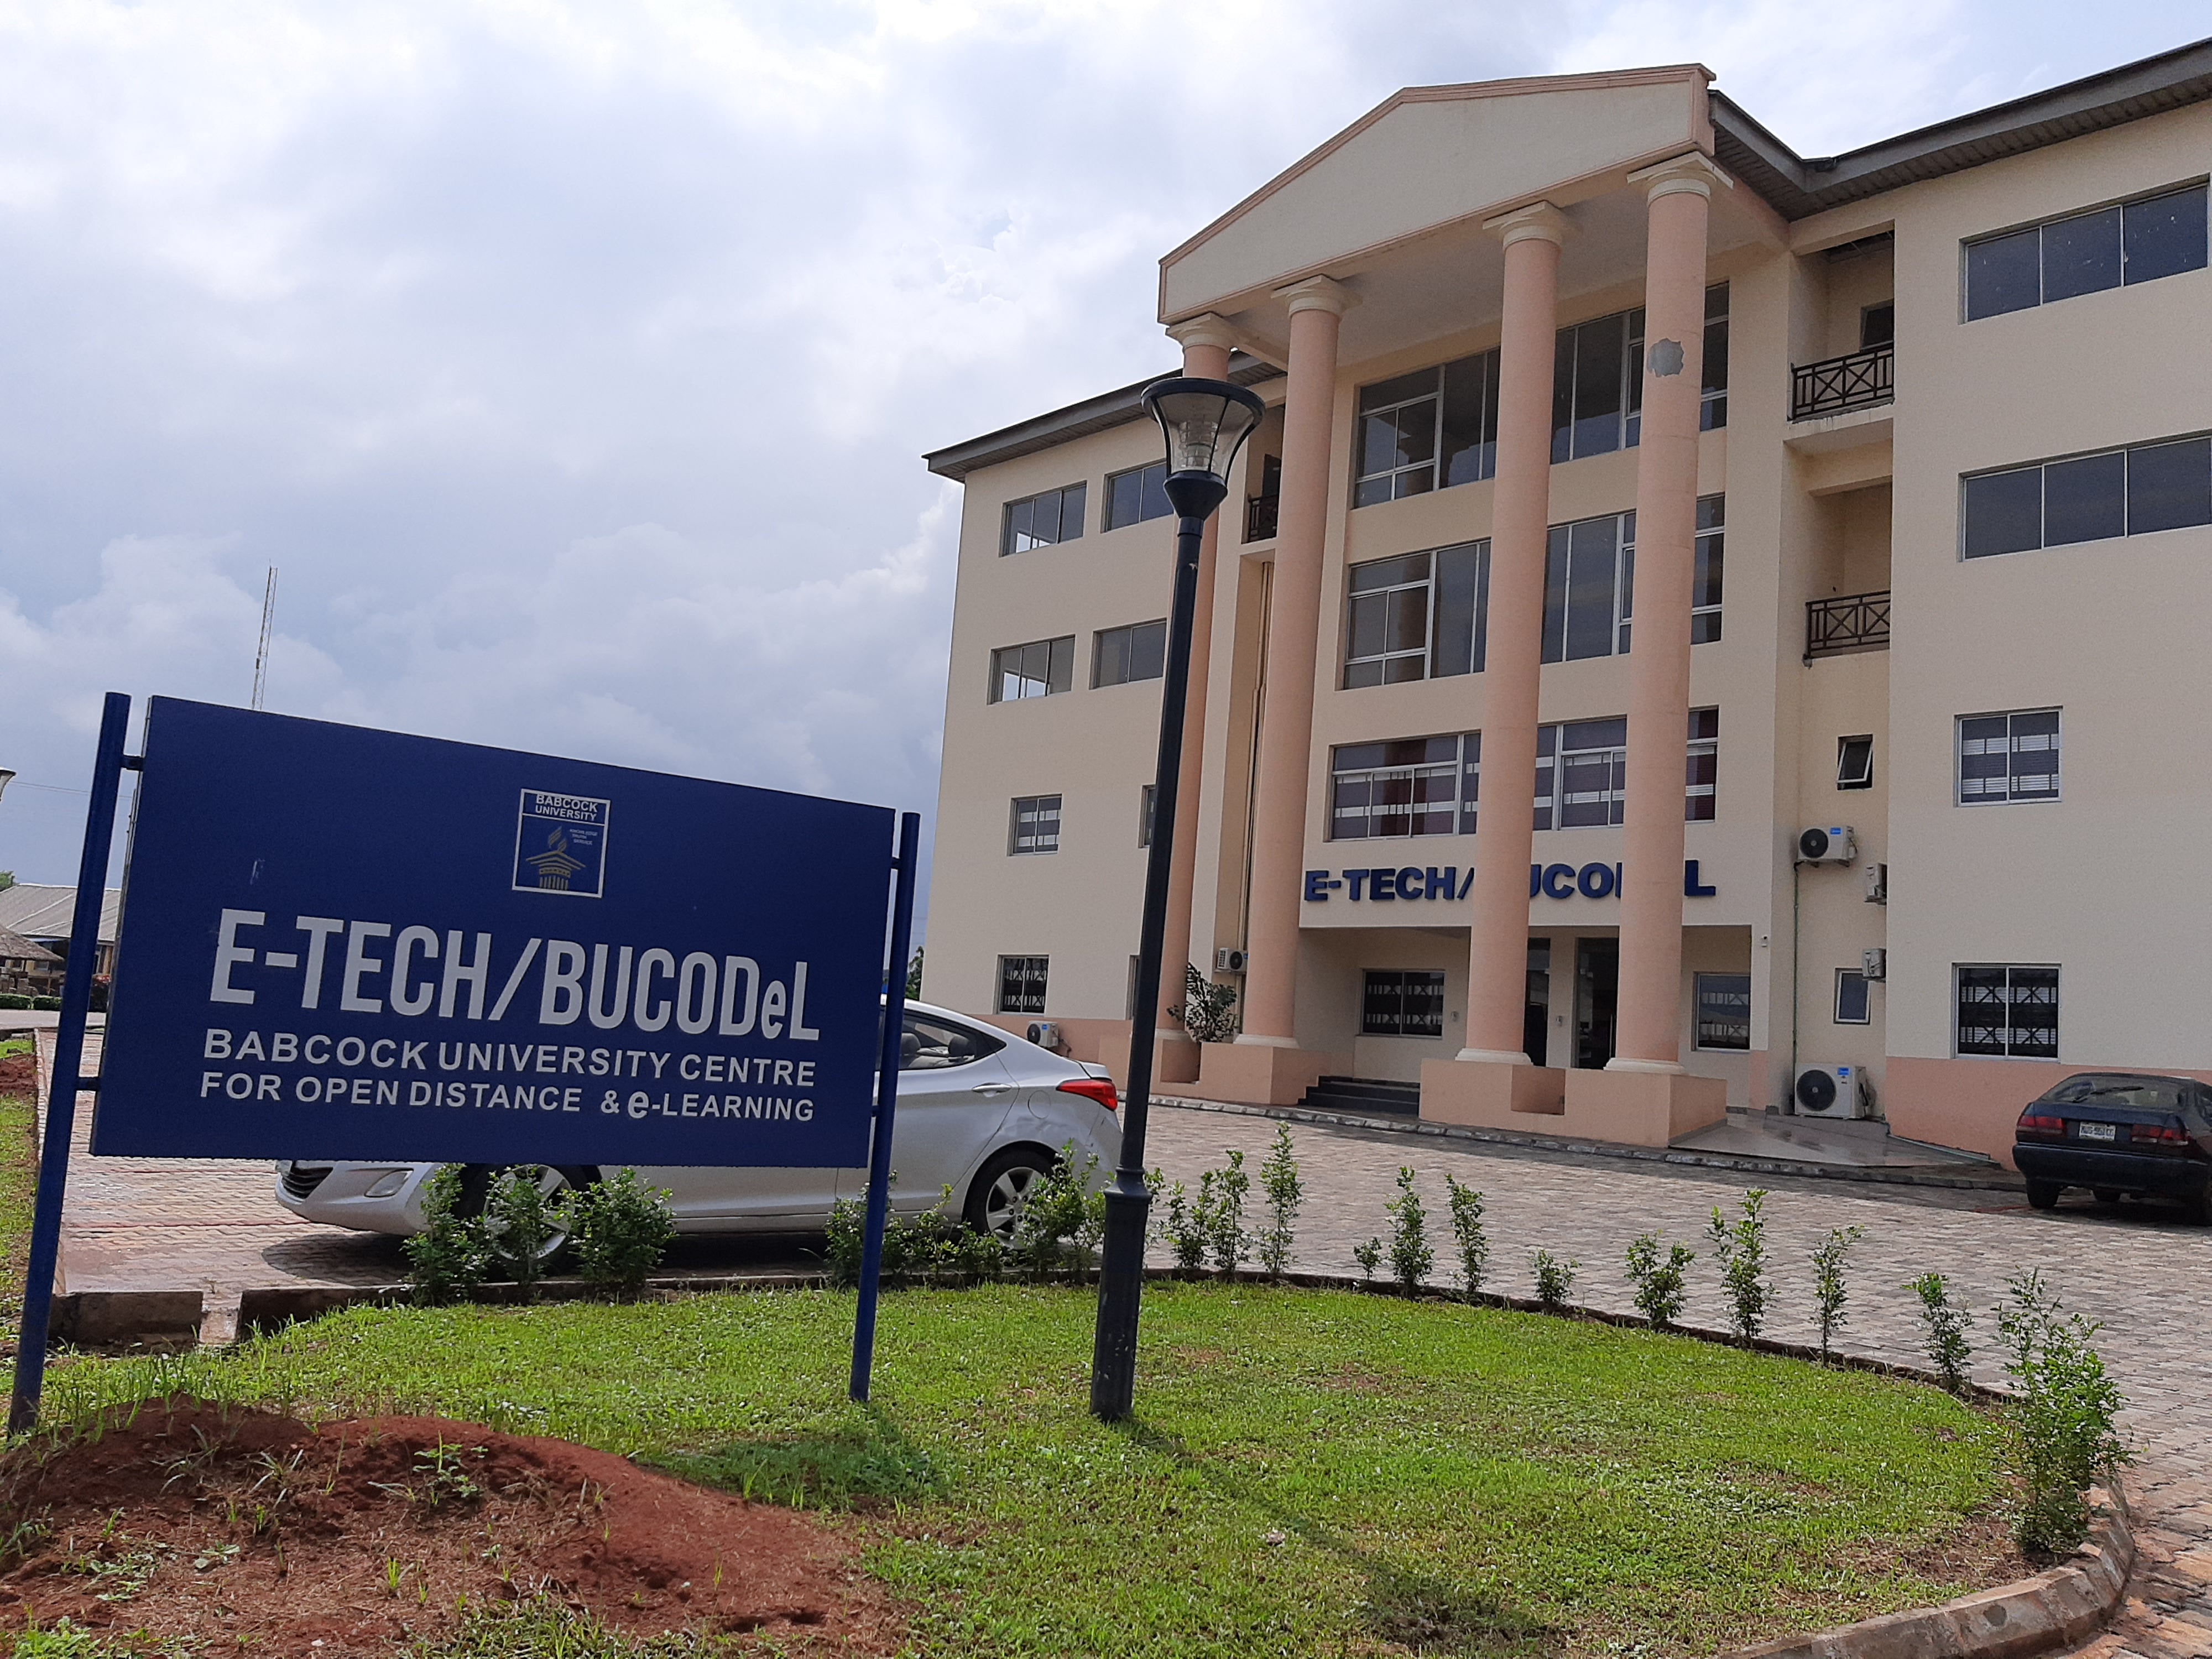 NUC Approves Babcock University Center for Open Distance and E-Learning (BUCodel))